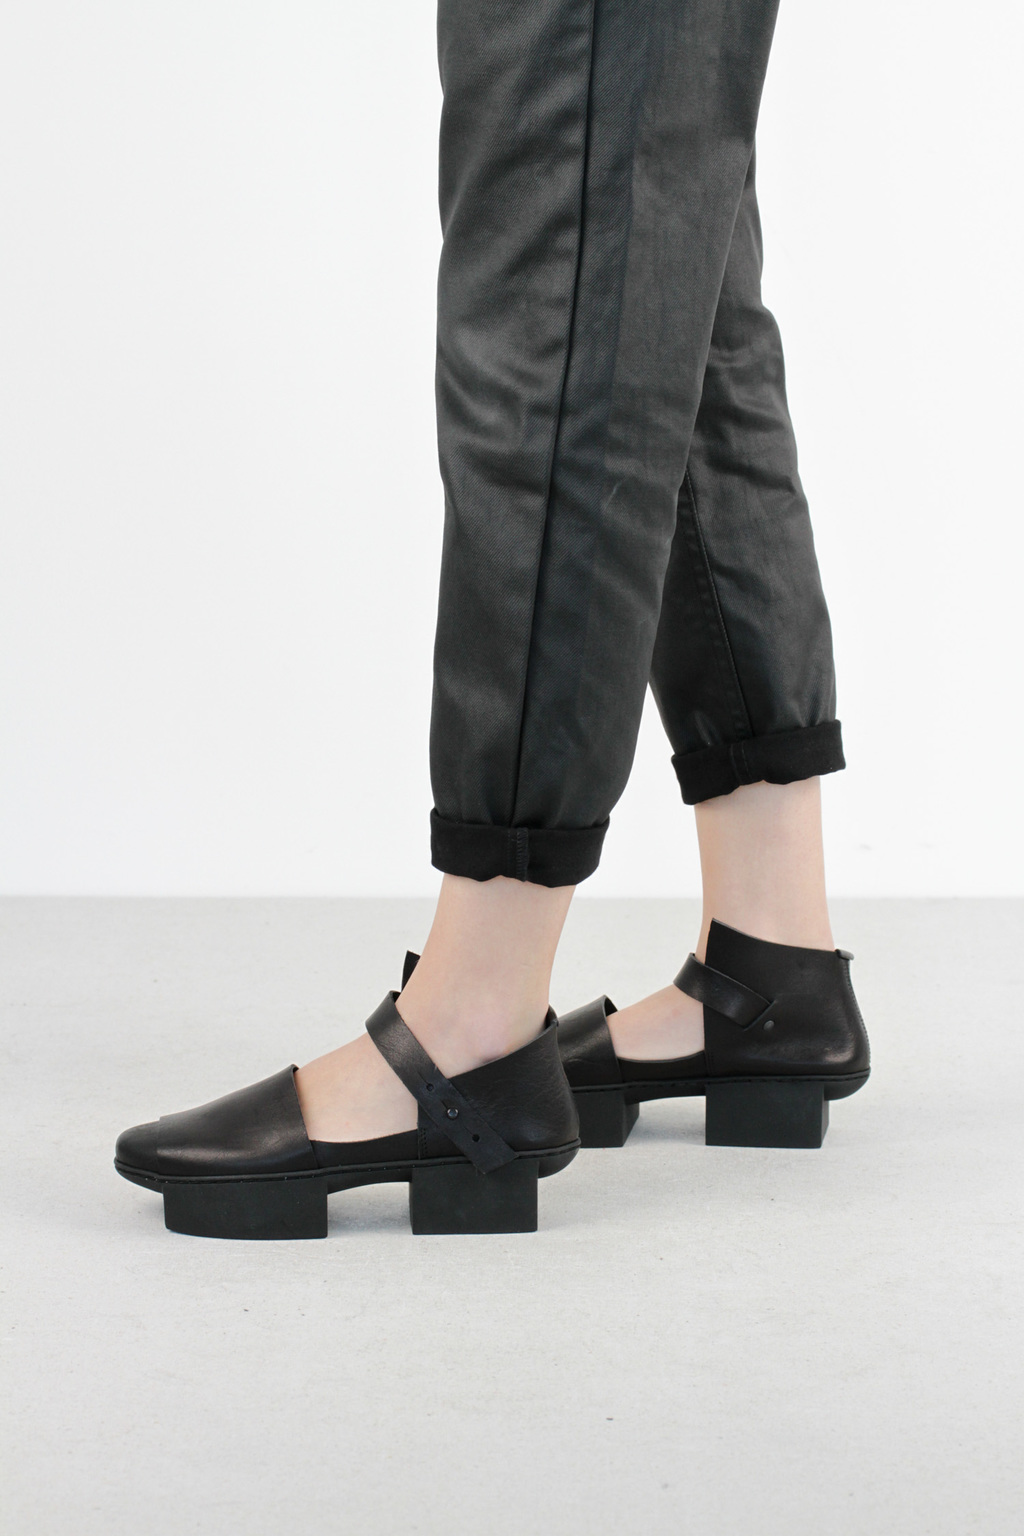 Trippen hatch f black waw leather shoes